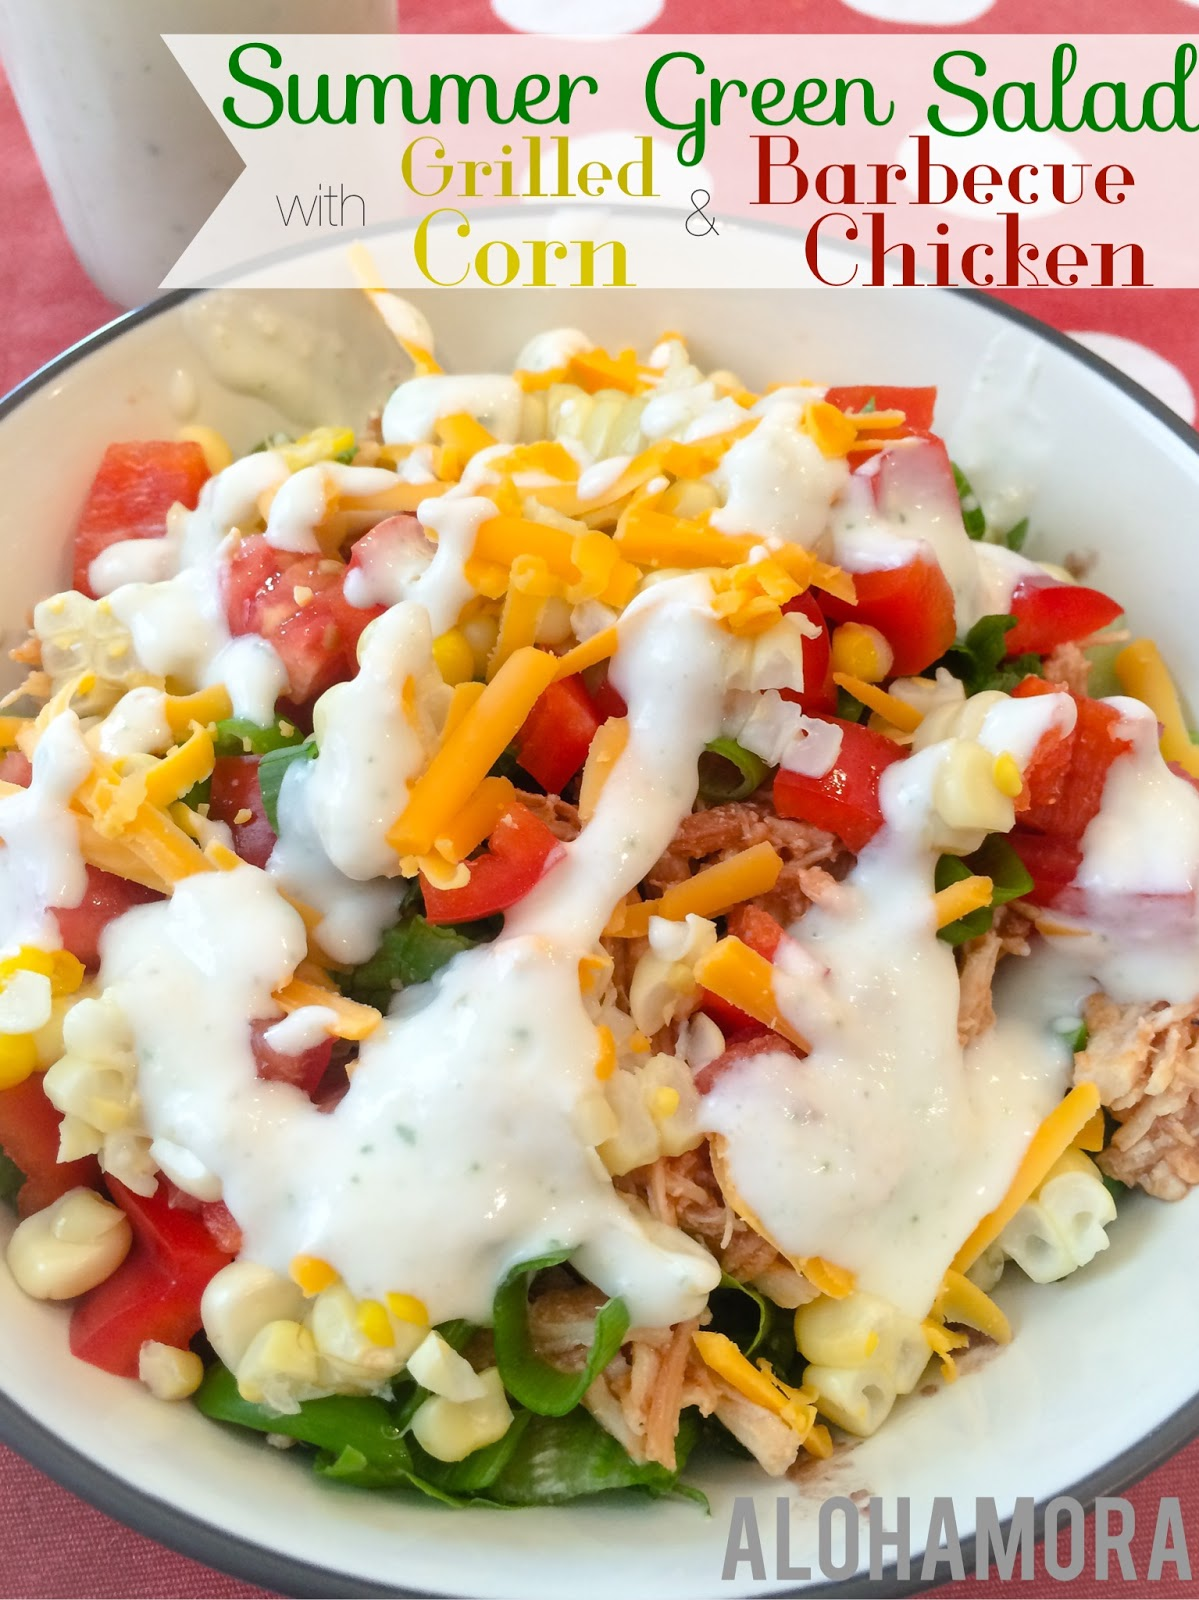 Summer Green Salad with Grilled Corn, leftover Barbecue Chicken, pineapple, bell peppers, green onion, cheese and homemade dressing.  Amazing! Alohamora Open a Book  http://alohamoraopenabook.blogspot.com/